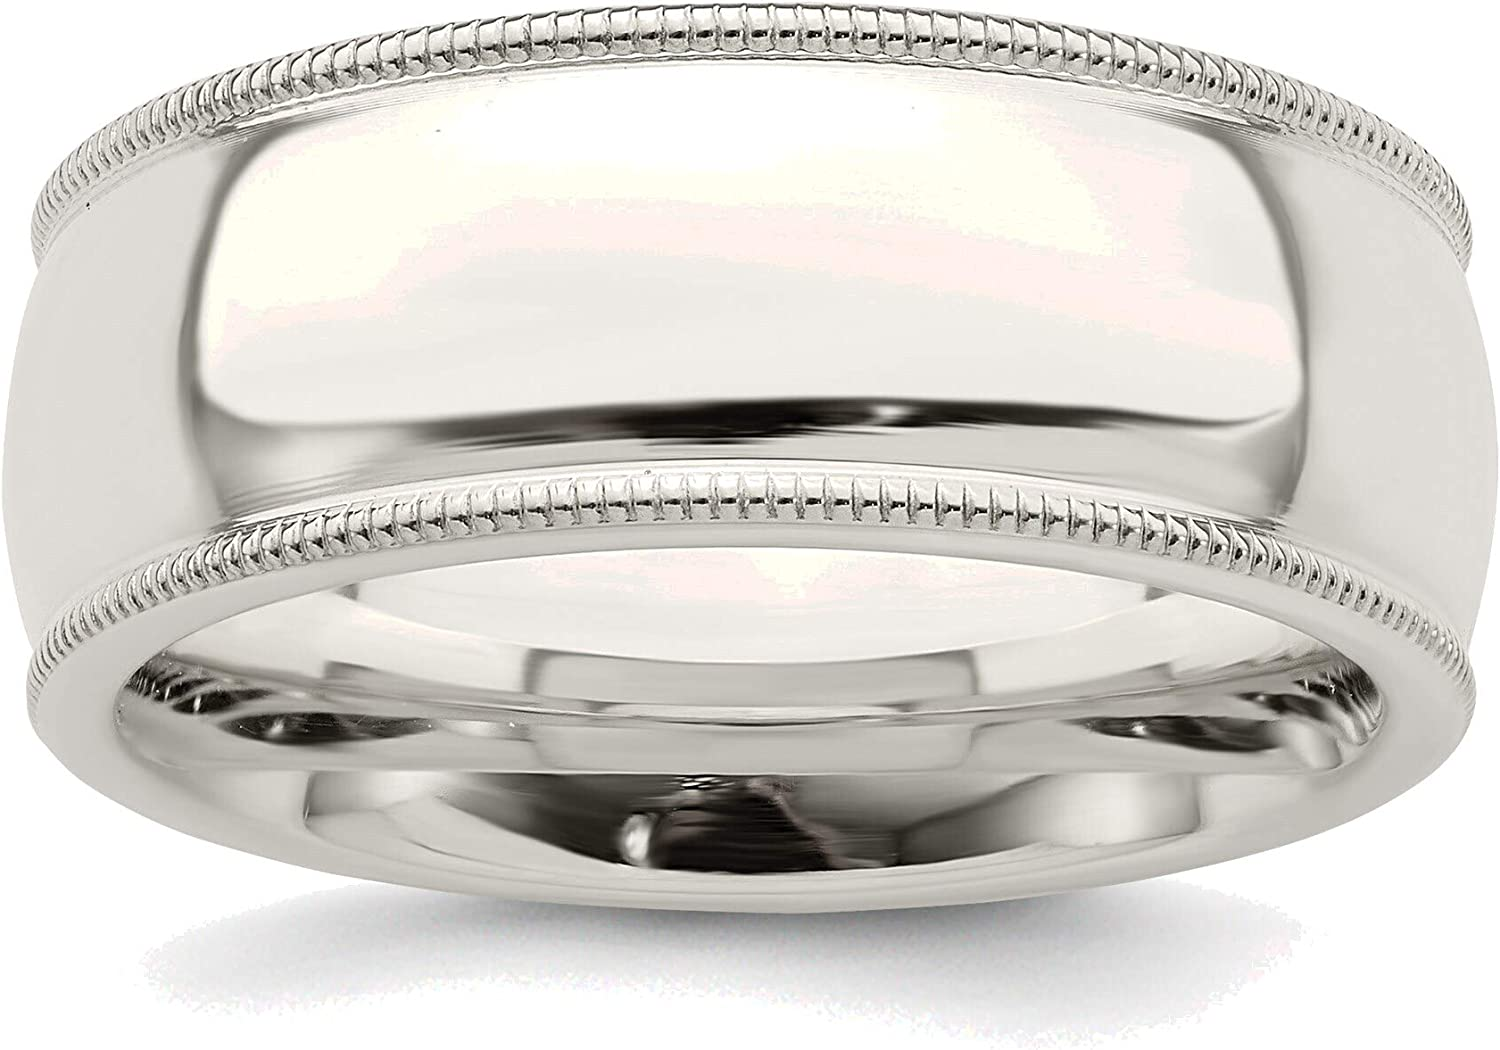 Bonyak Save money Jewelry Solid Sterling Silver We OFFer at cheap prices Milgrain Ba Comfort 8mm Fit